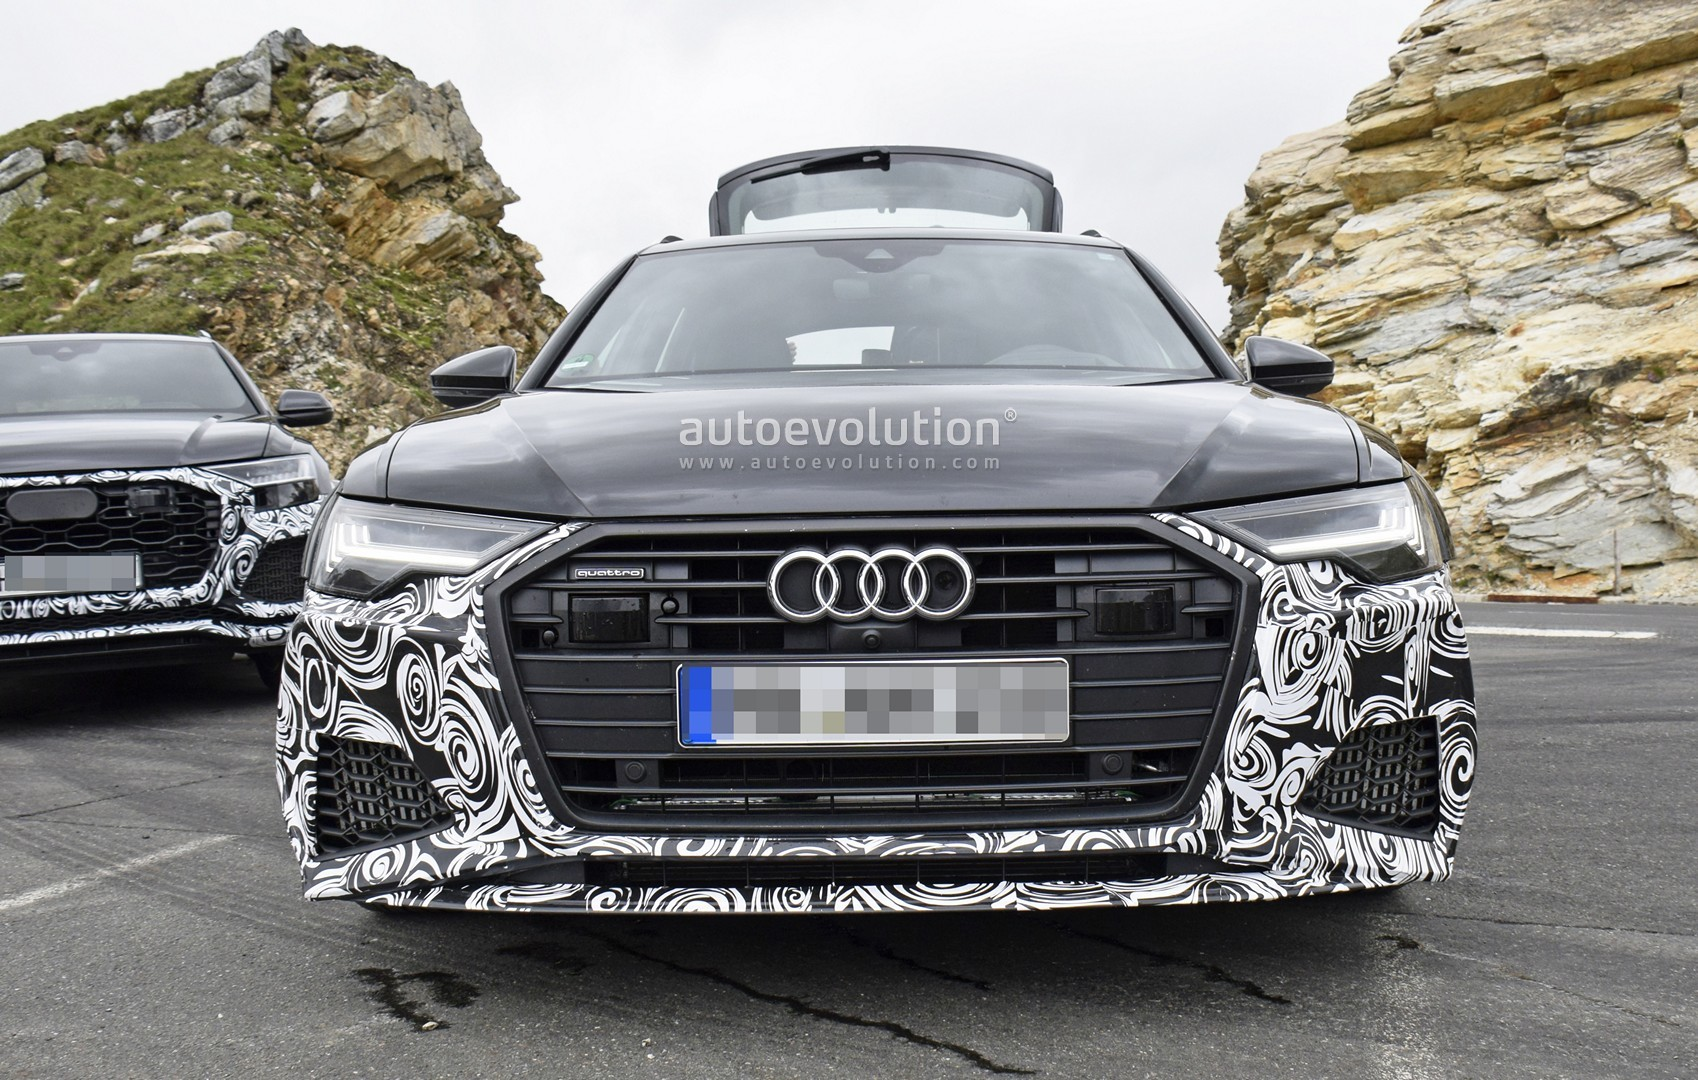 [Imagen: 2020-audi-rs6-avant-makes-spy-photo-debut_6.jpg]